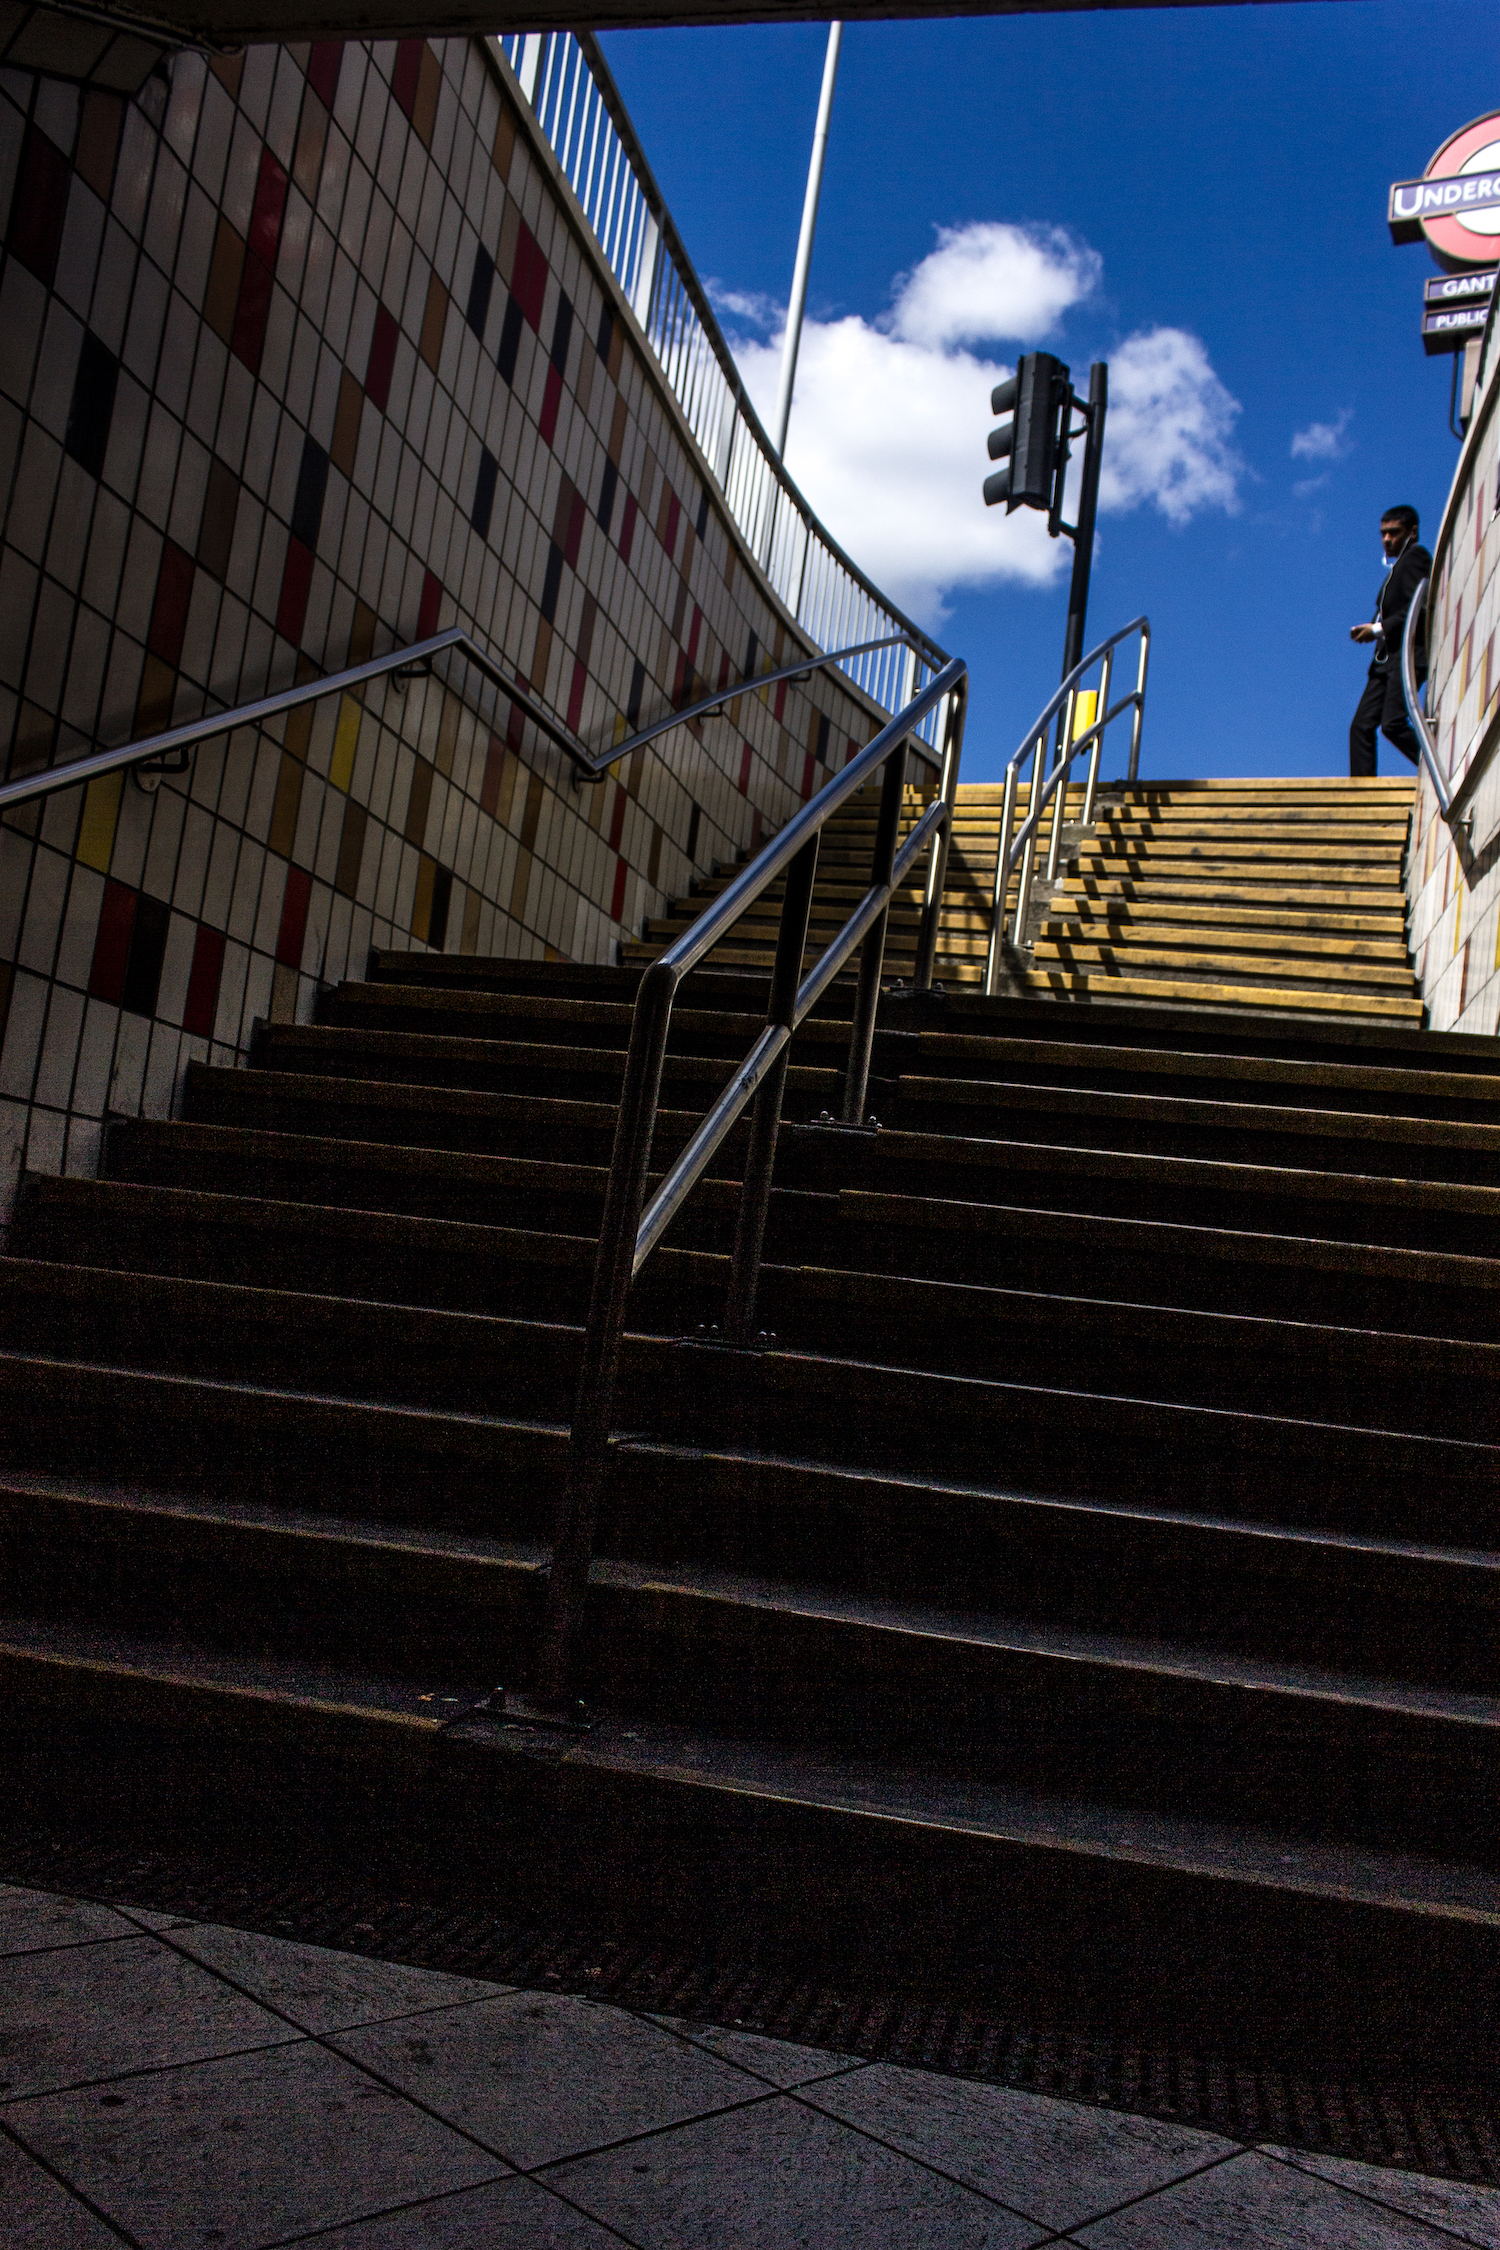 Professional Photography Exterior Descending Stairs To Station Subway In Gants Hill Train Station London